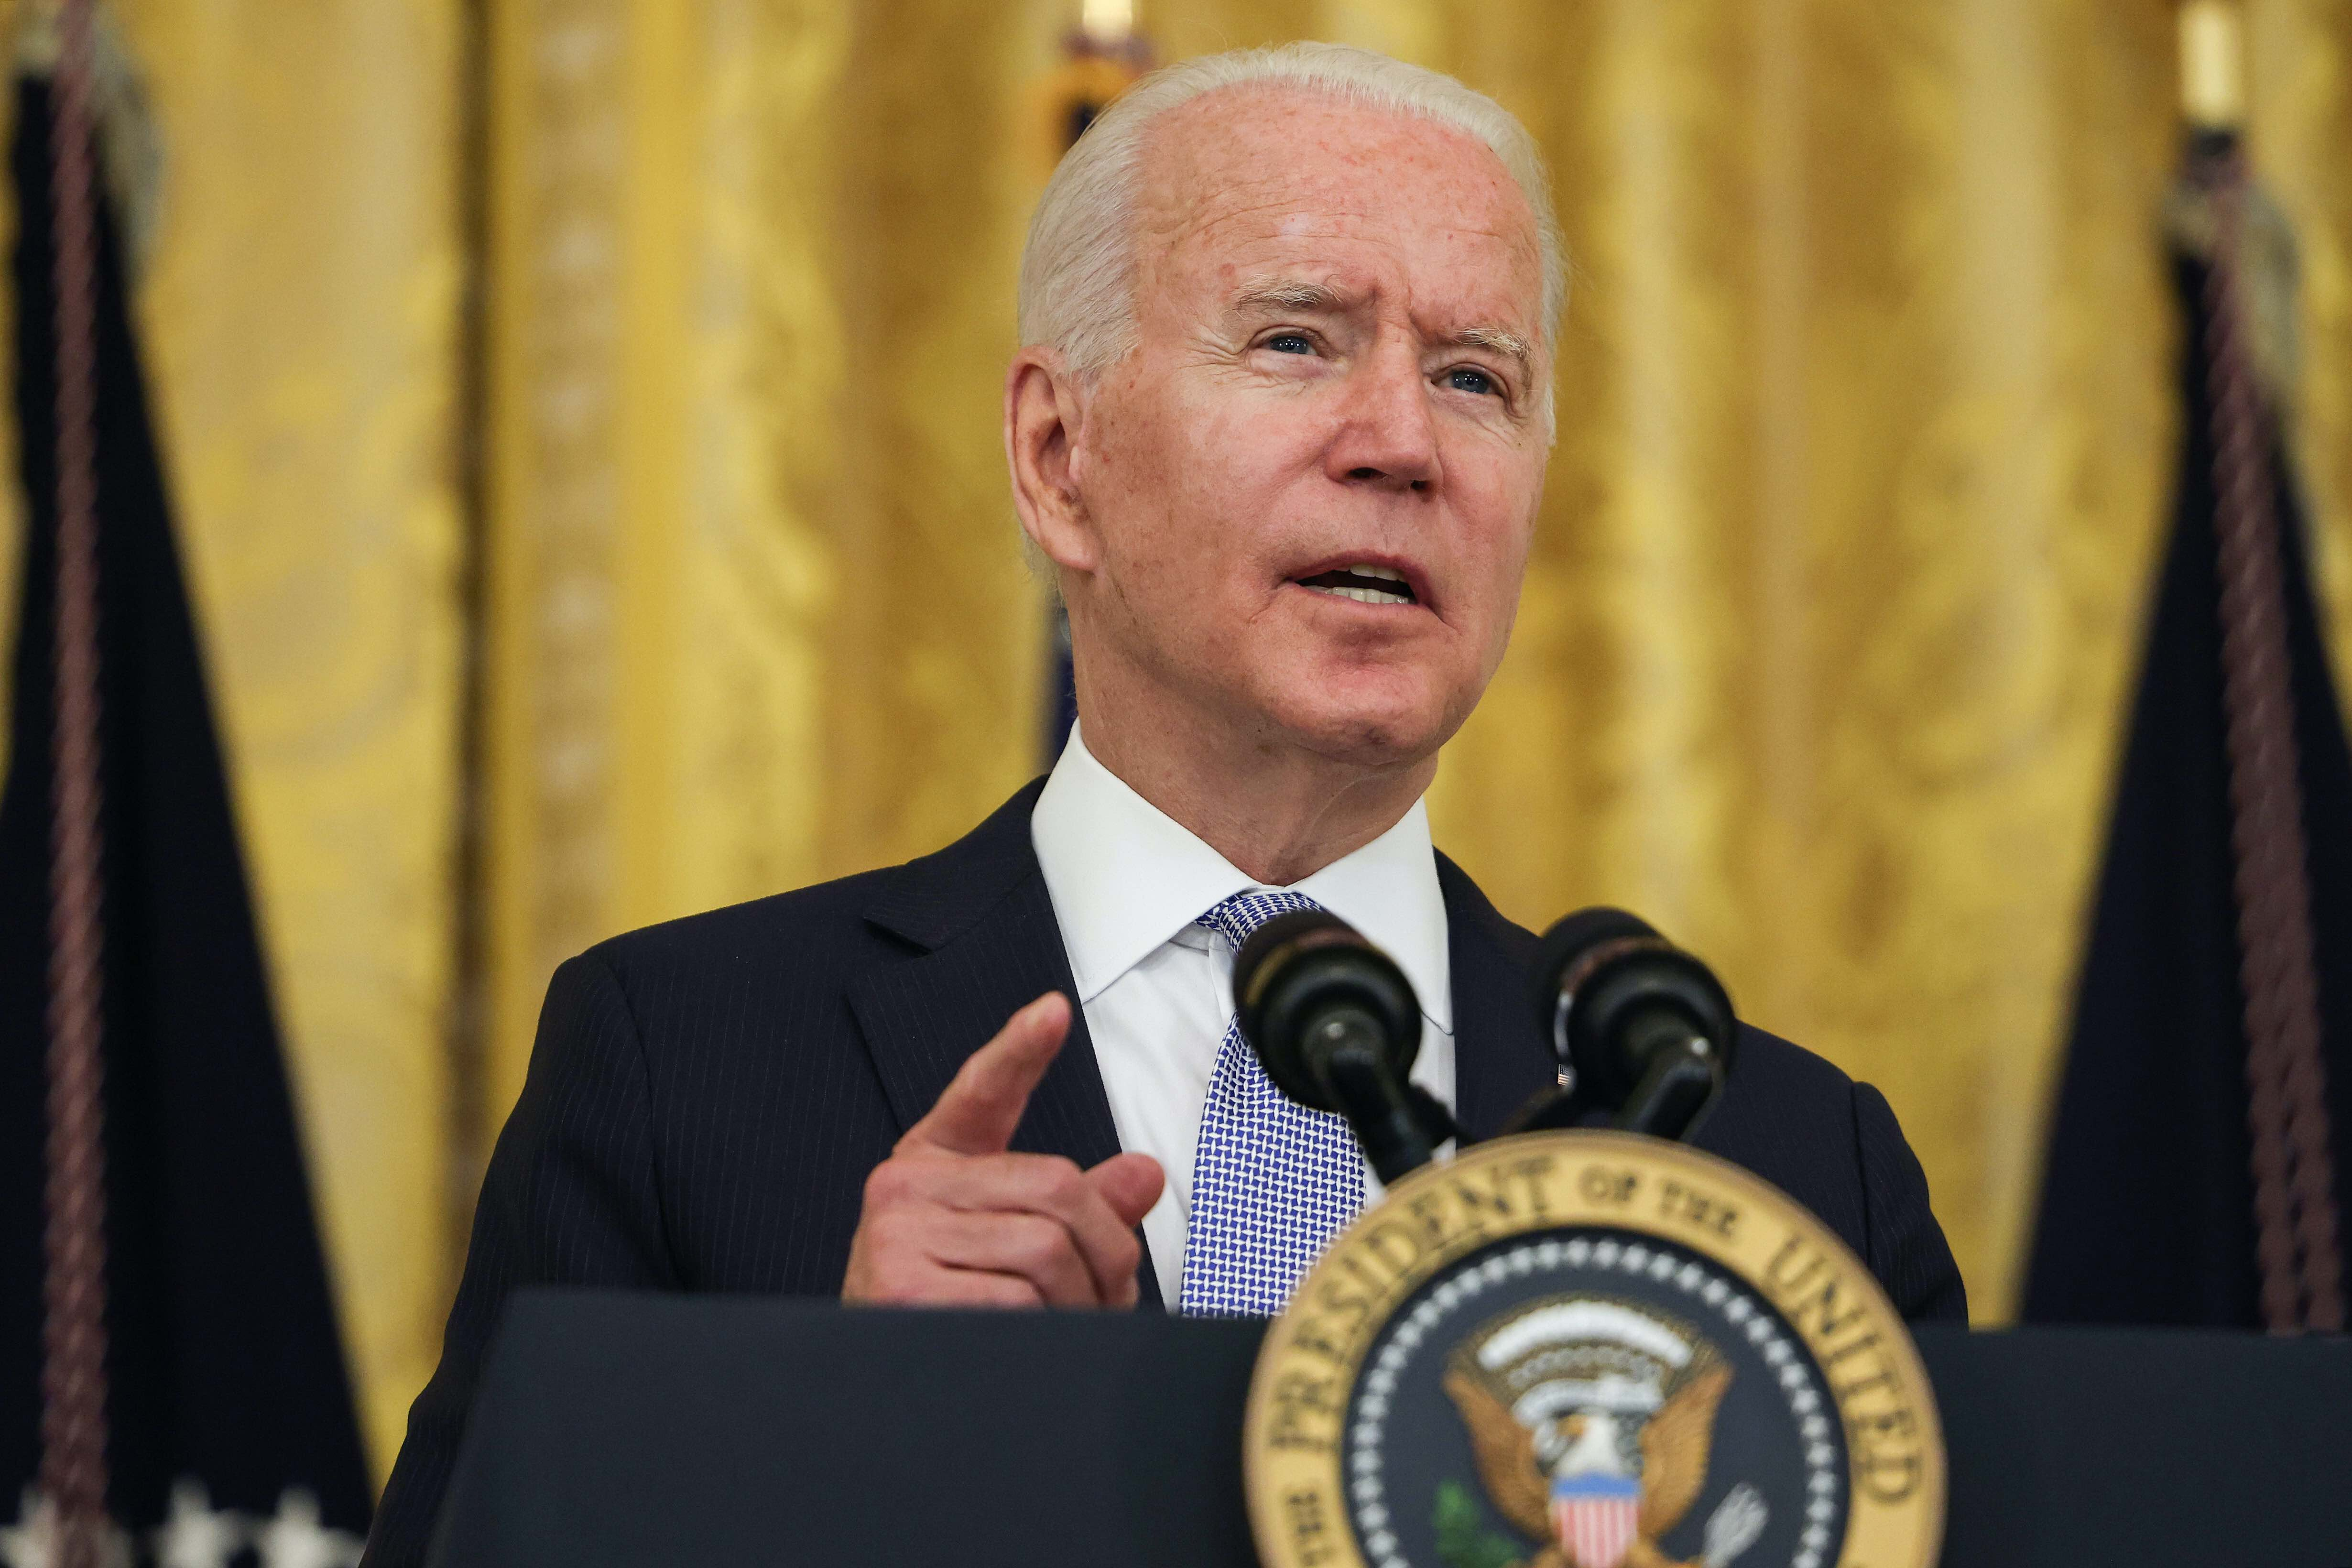 White House once again makes Covid-19 the focus of Biden's schedule